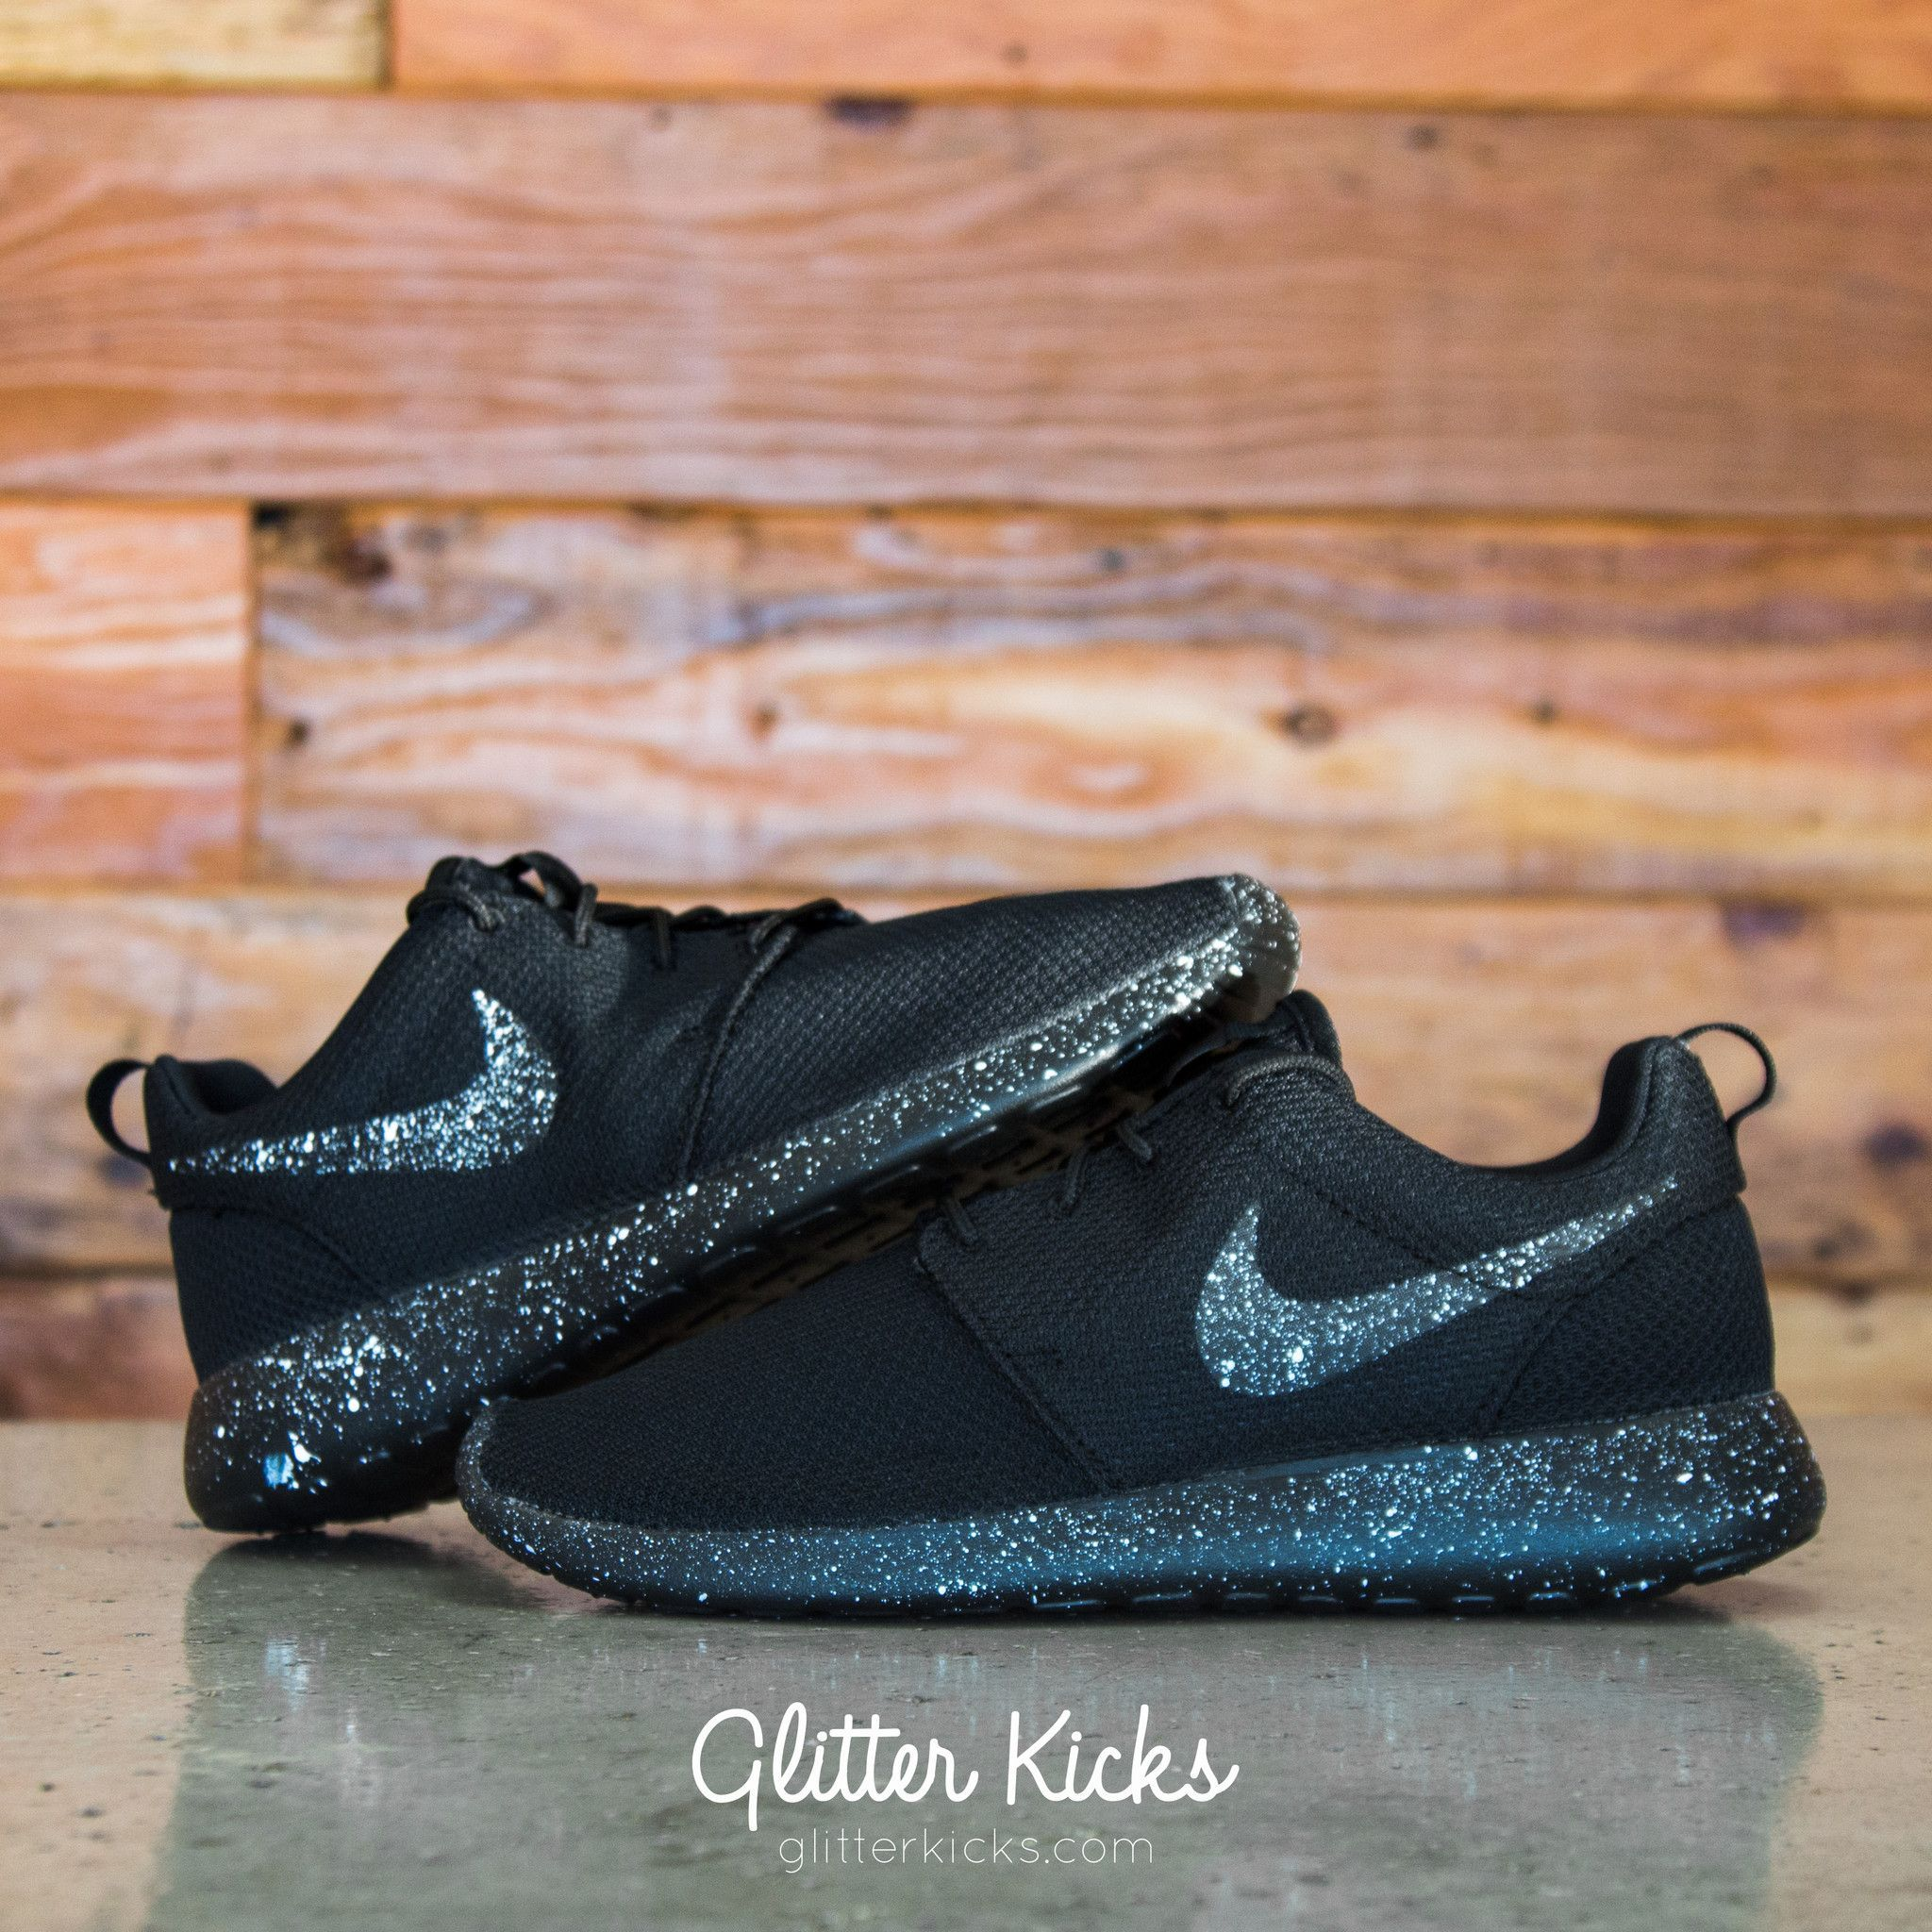 nike roshe one run black white splatter oreo speckled custom stickers